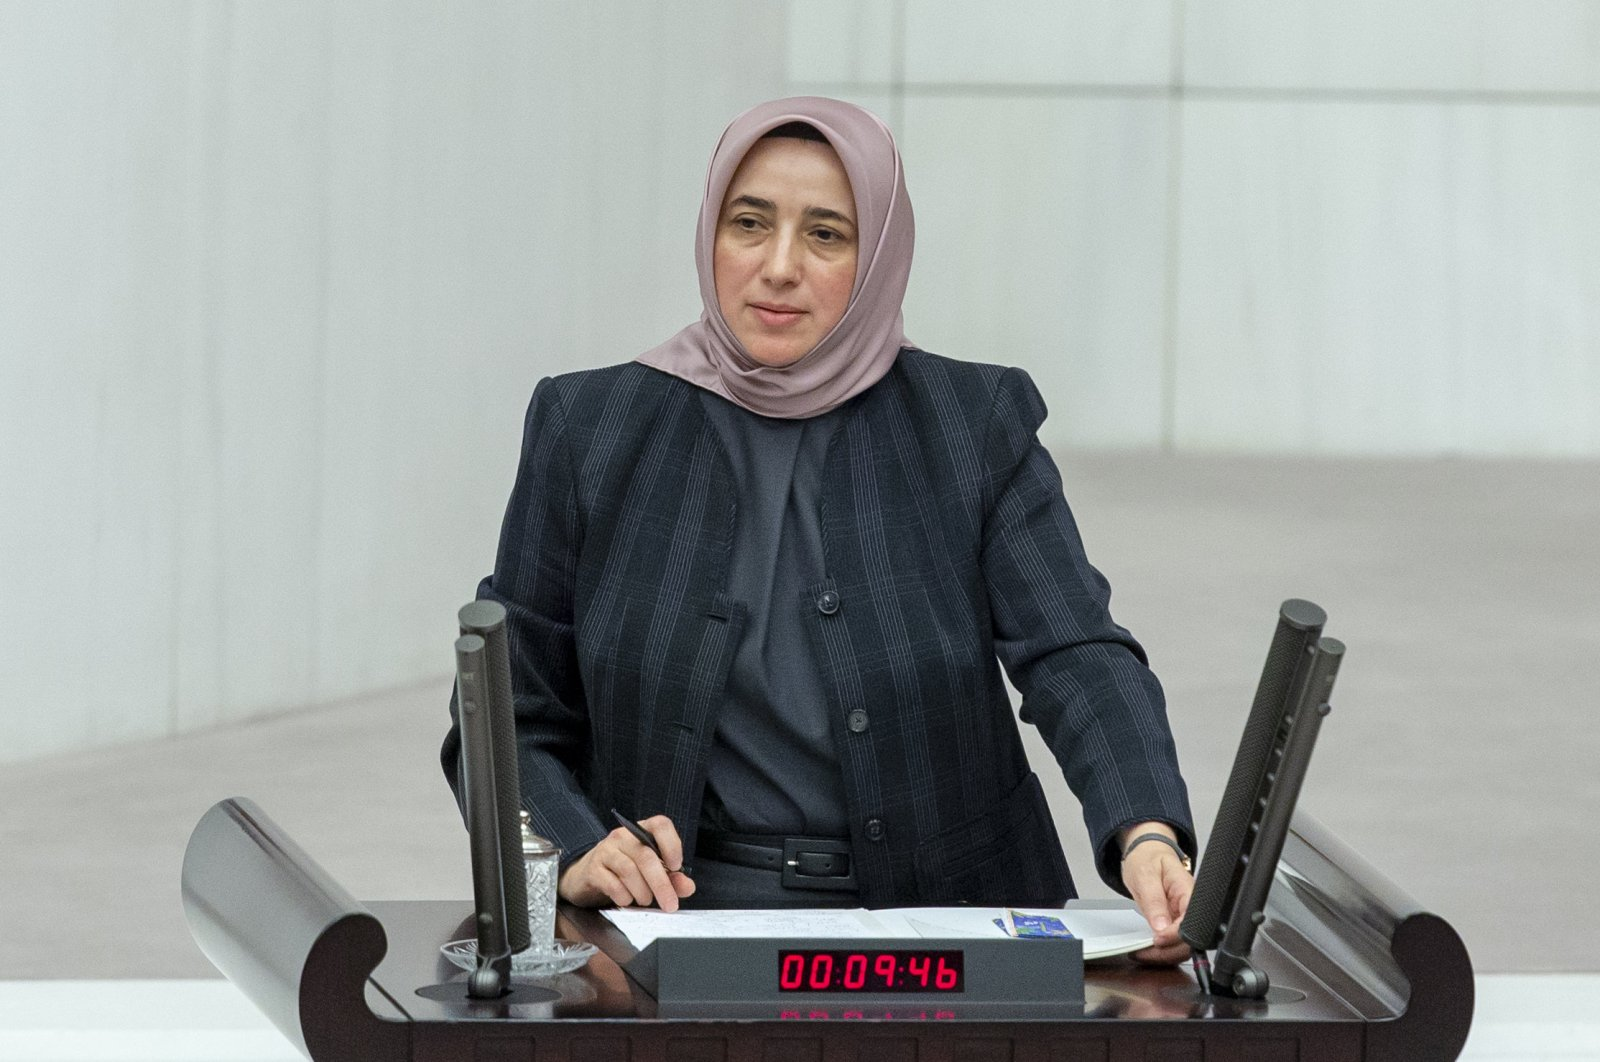 Justice and Development Party's (AK Party) group deputy chair, Özlem Zengin, makes a speech at the Turkish parliament, Oct. 21, 2019. (AA)